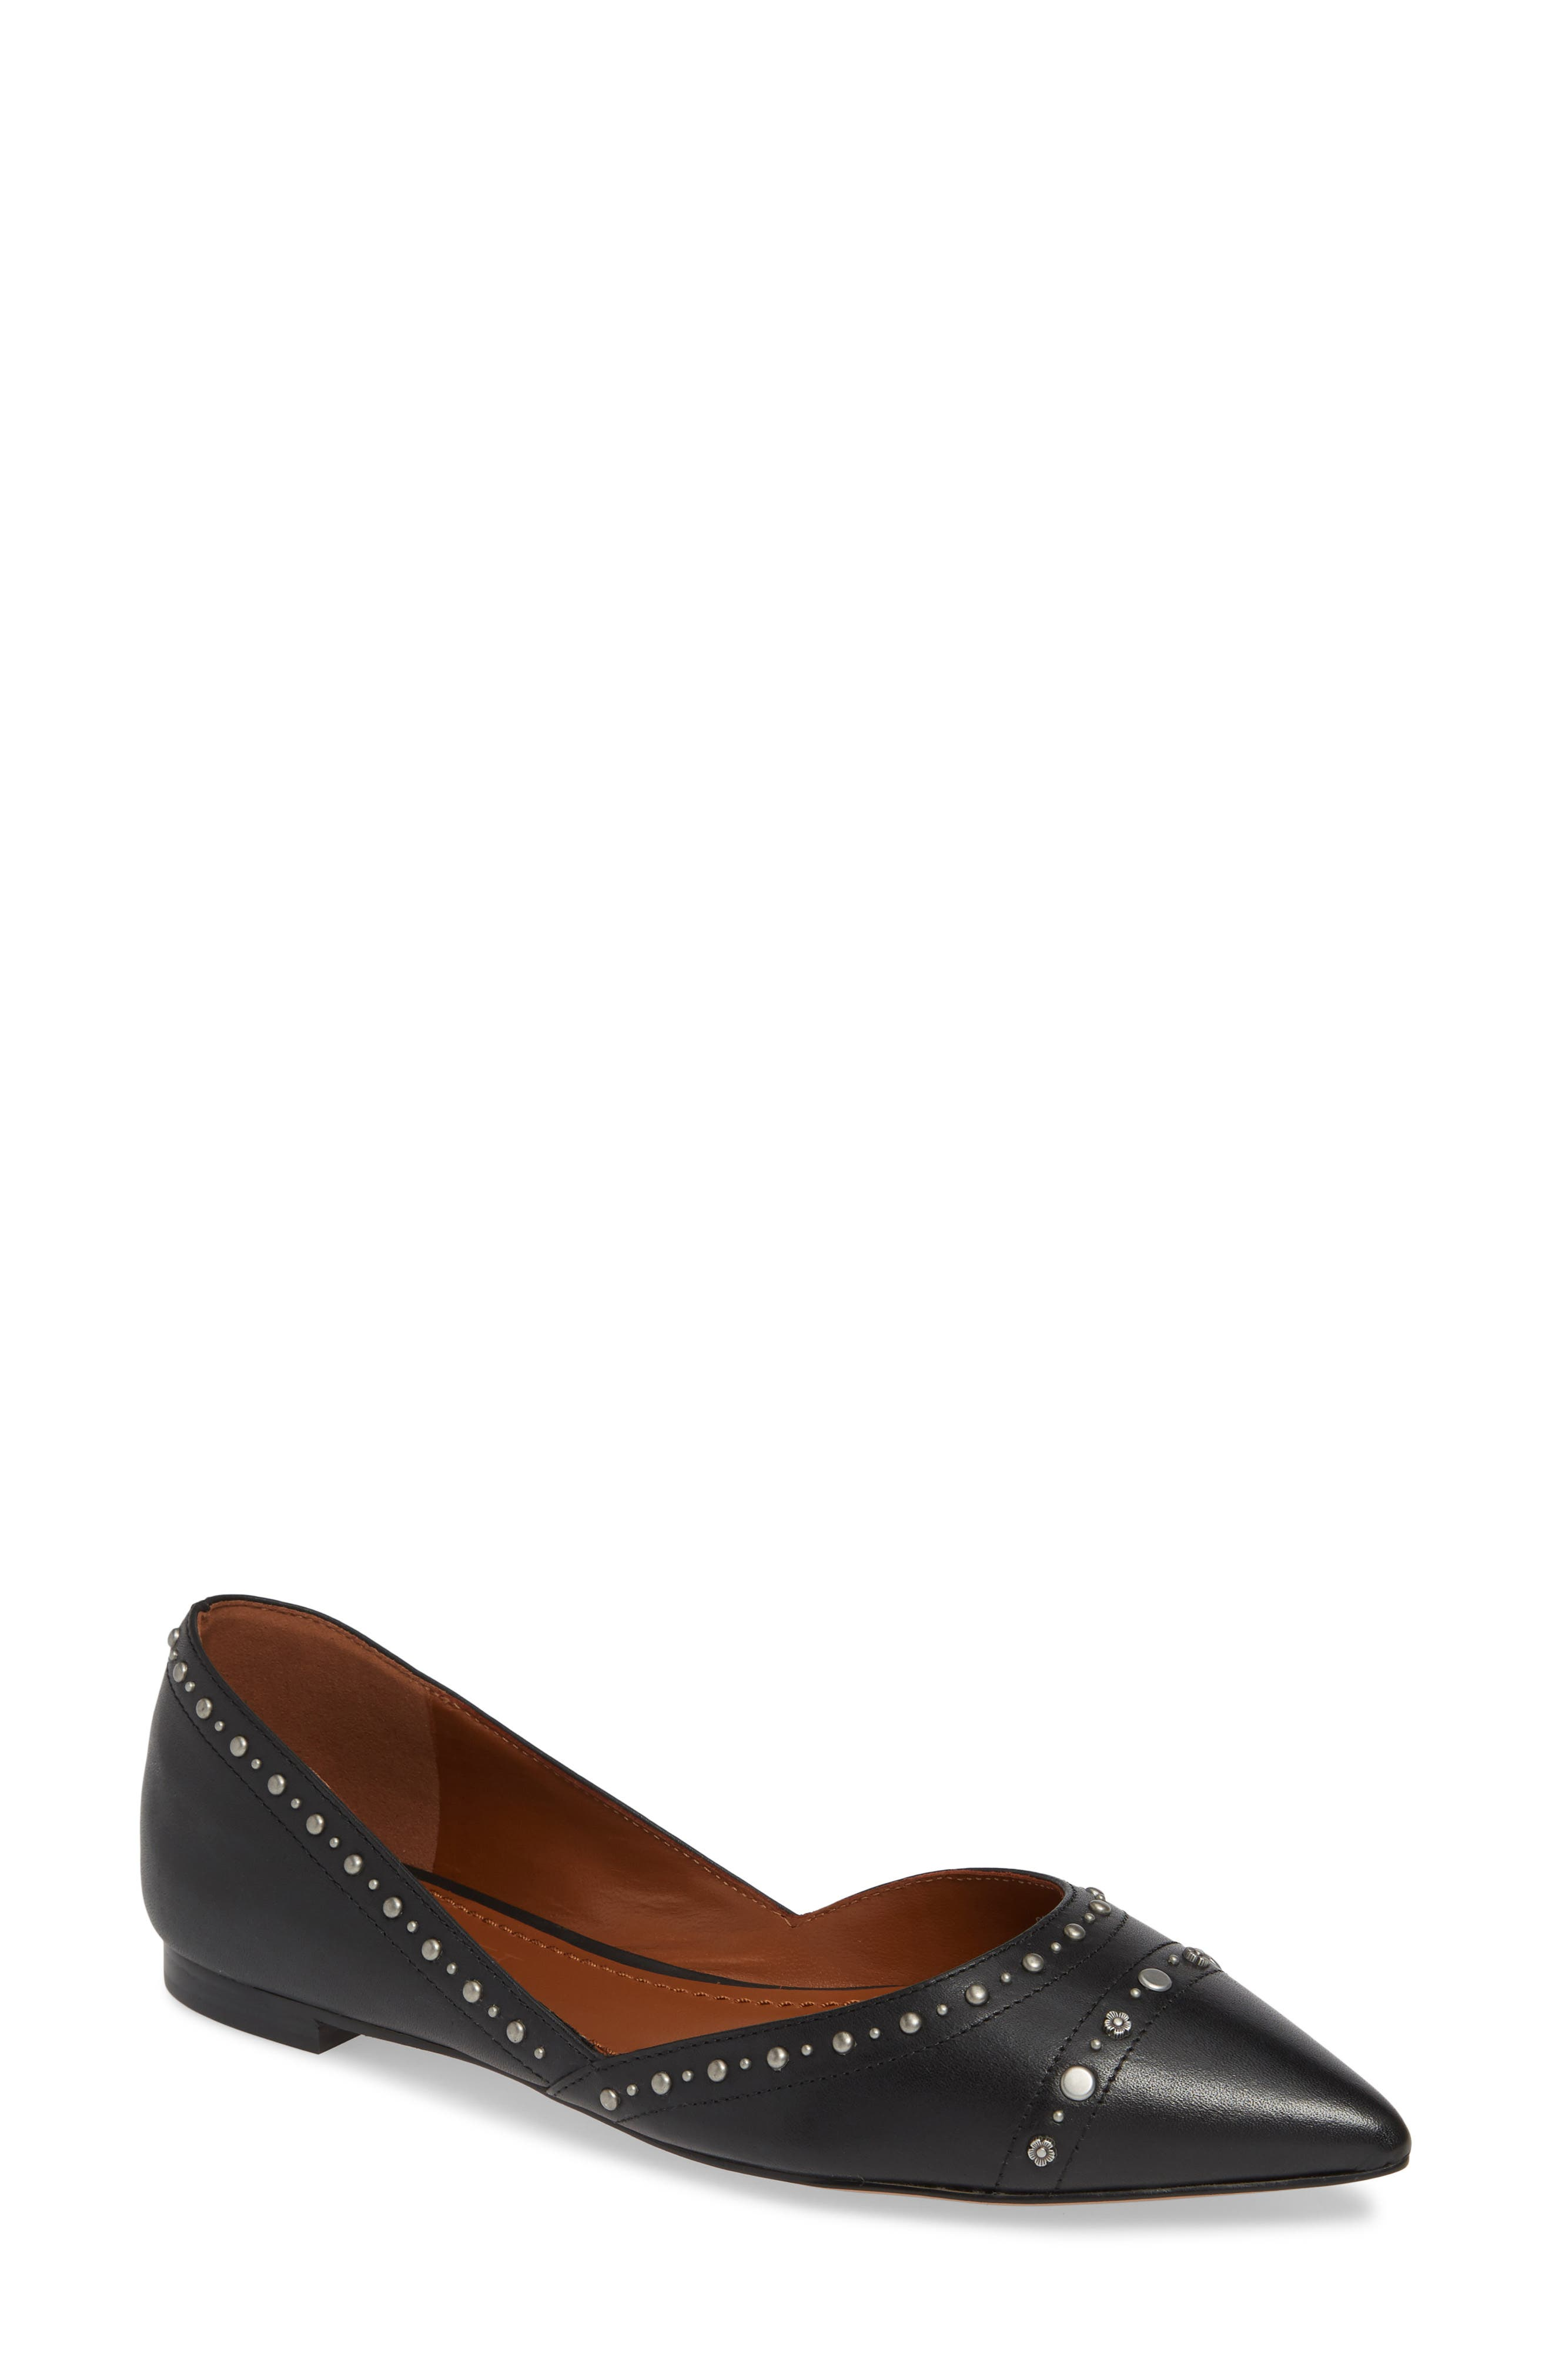 Coach Valintina Pointed Toe Flat, Black